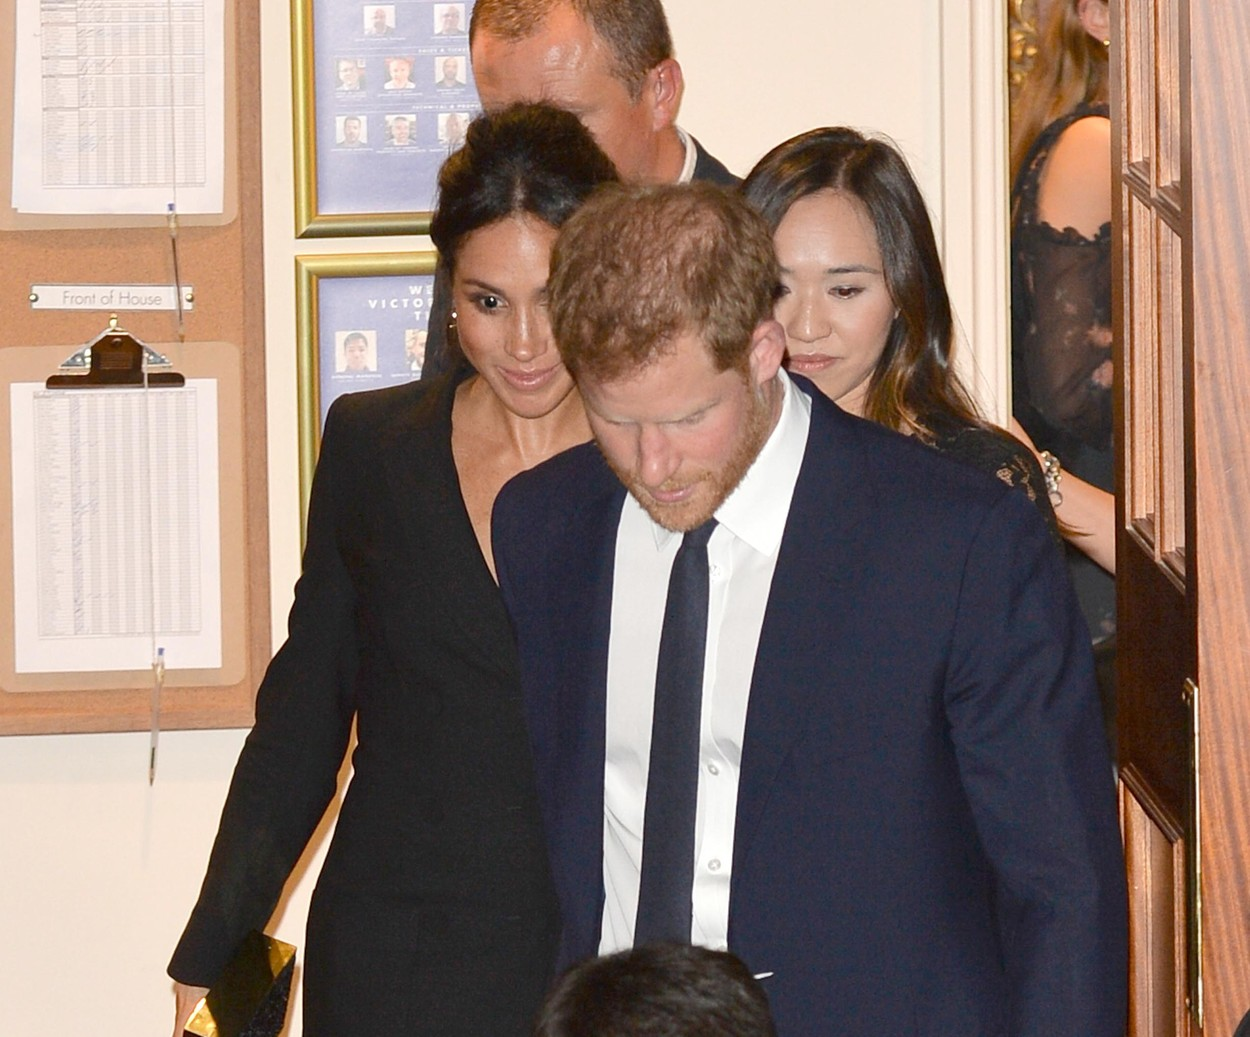 , London, England - 20180829 - Prince Harry and Meghan Duchess of Sussex Leaving a Performance of Hamilton at Victoria Palace Theatre  -PICTURED: Prince Harry and Meghan Duchess of Sussex -, Image: 384550933, License: Rights-managed, Restrictions: , Model Release: no, Credit line: INSTARimages.com / INSTAR Images / Profimedia